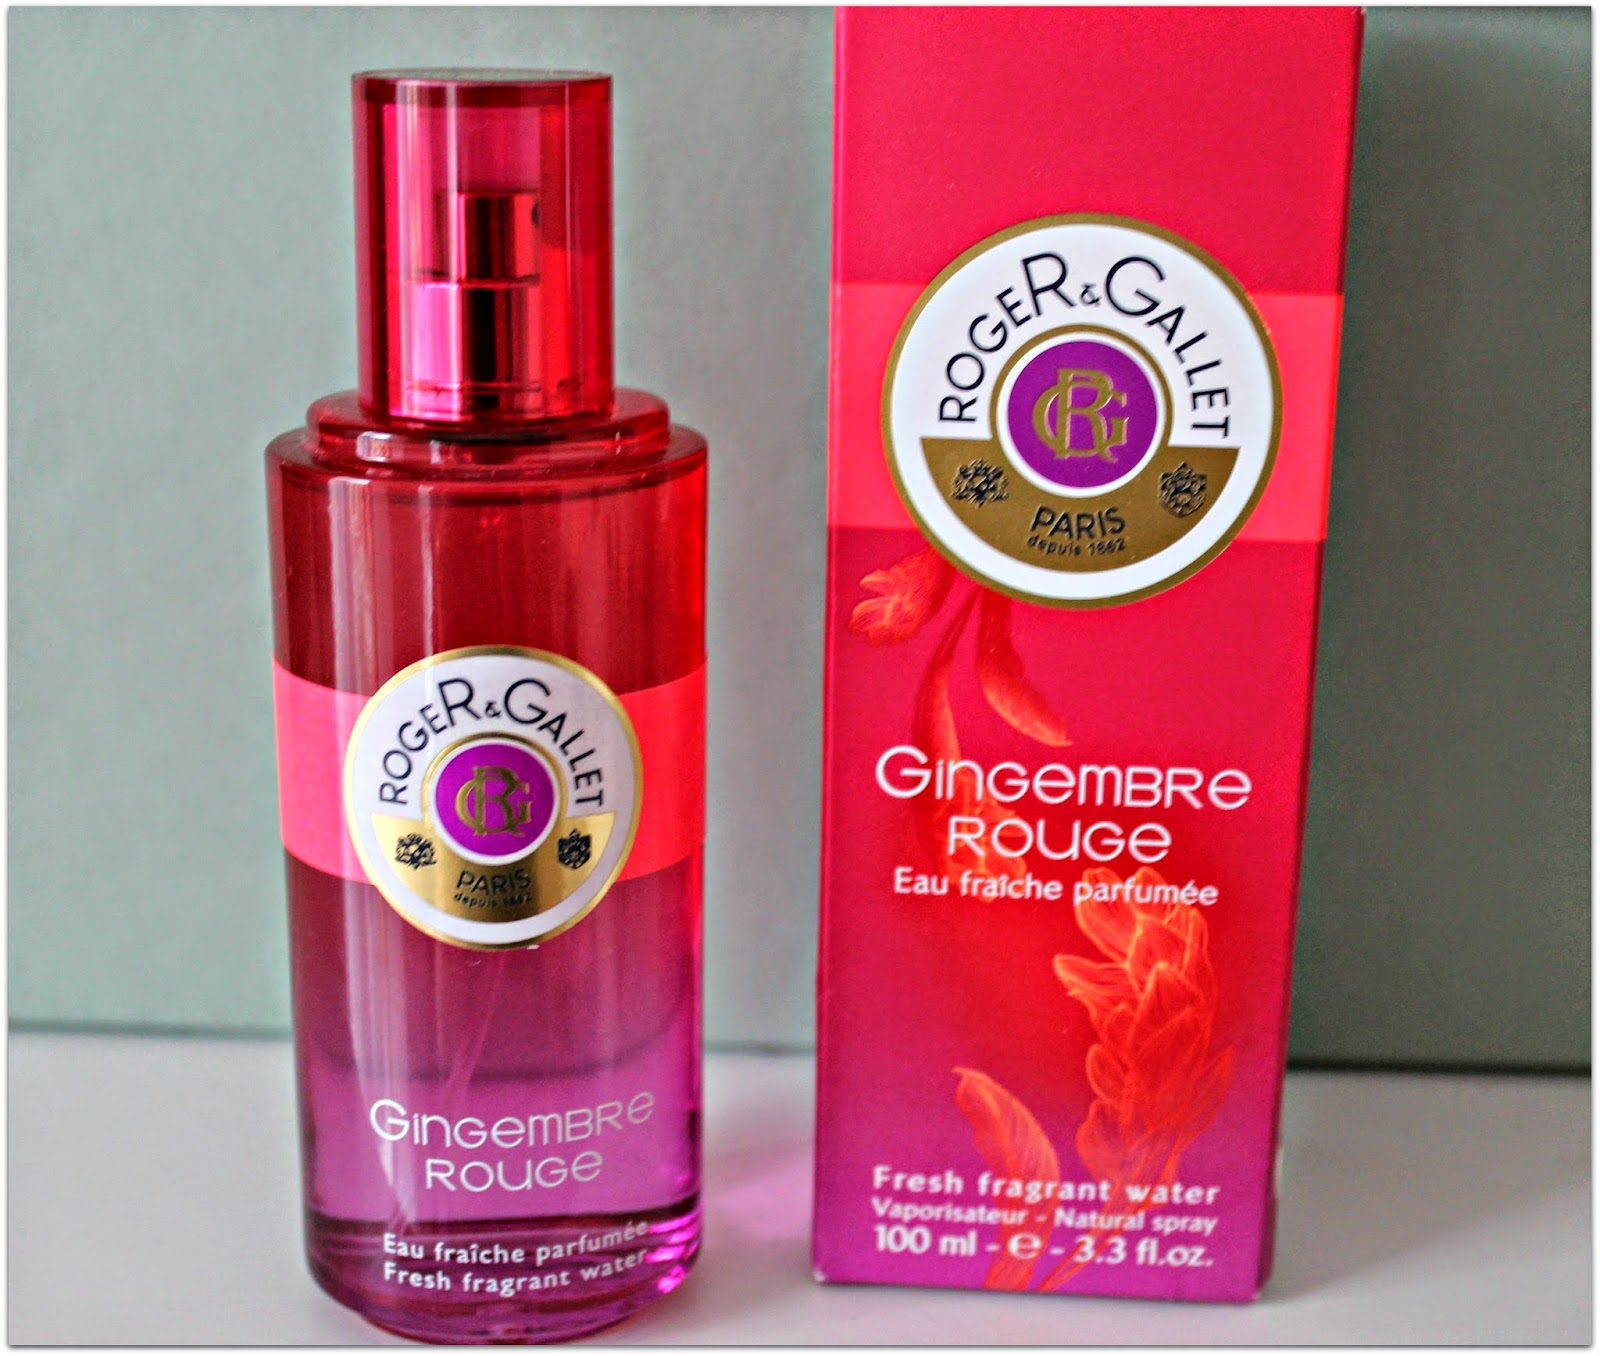 nfp roger gallet gingembre rouge eau fraiche fragrance review. Black Bedroom Furniture Sets. Home Design Ideas